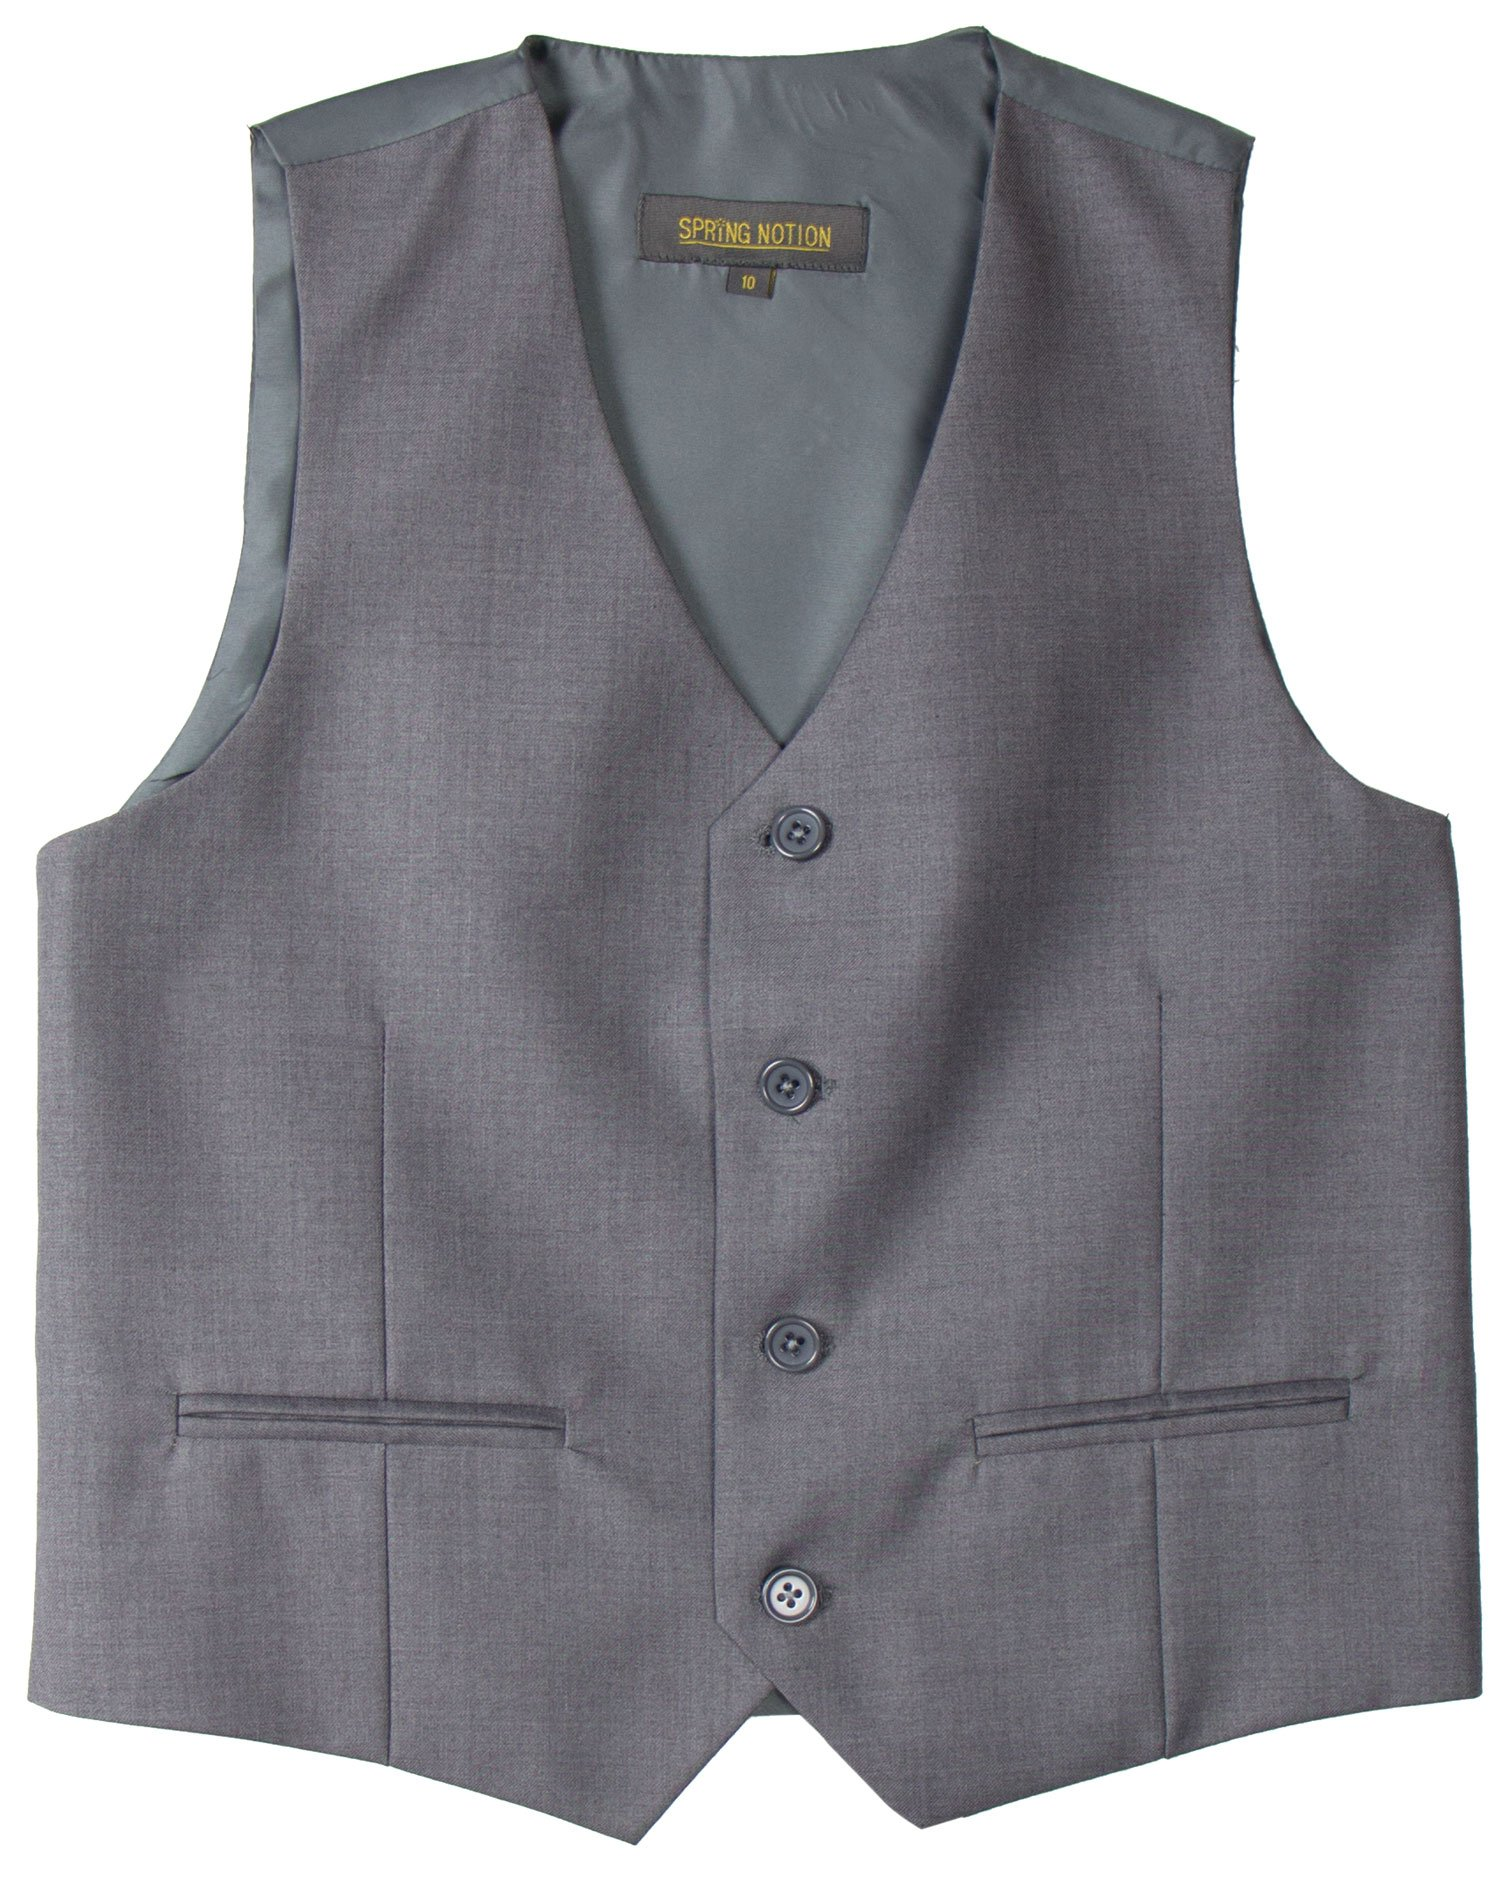 Spring Notion Big Boys' Two Button Suit 05 Grey Vest